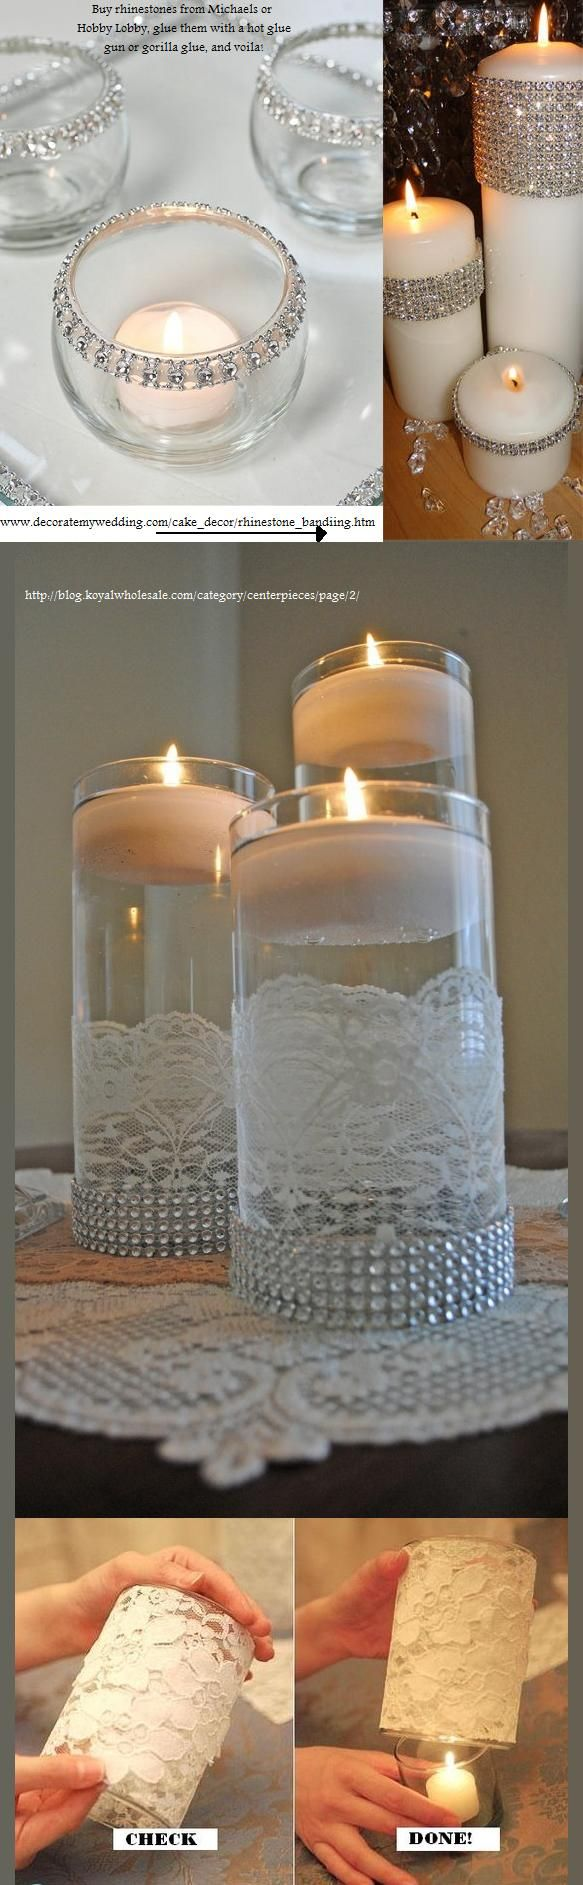 Centerpieces, Candles, Vases, Lace, Diamonds, Rhinestones, Ribbon